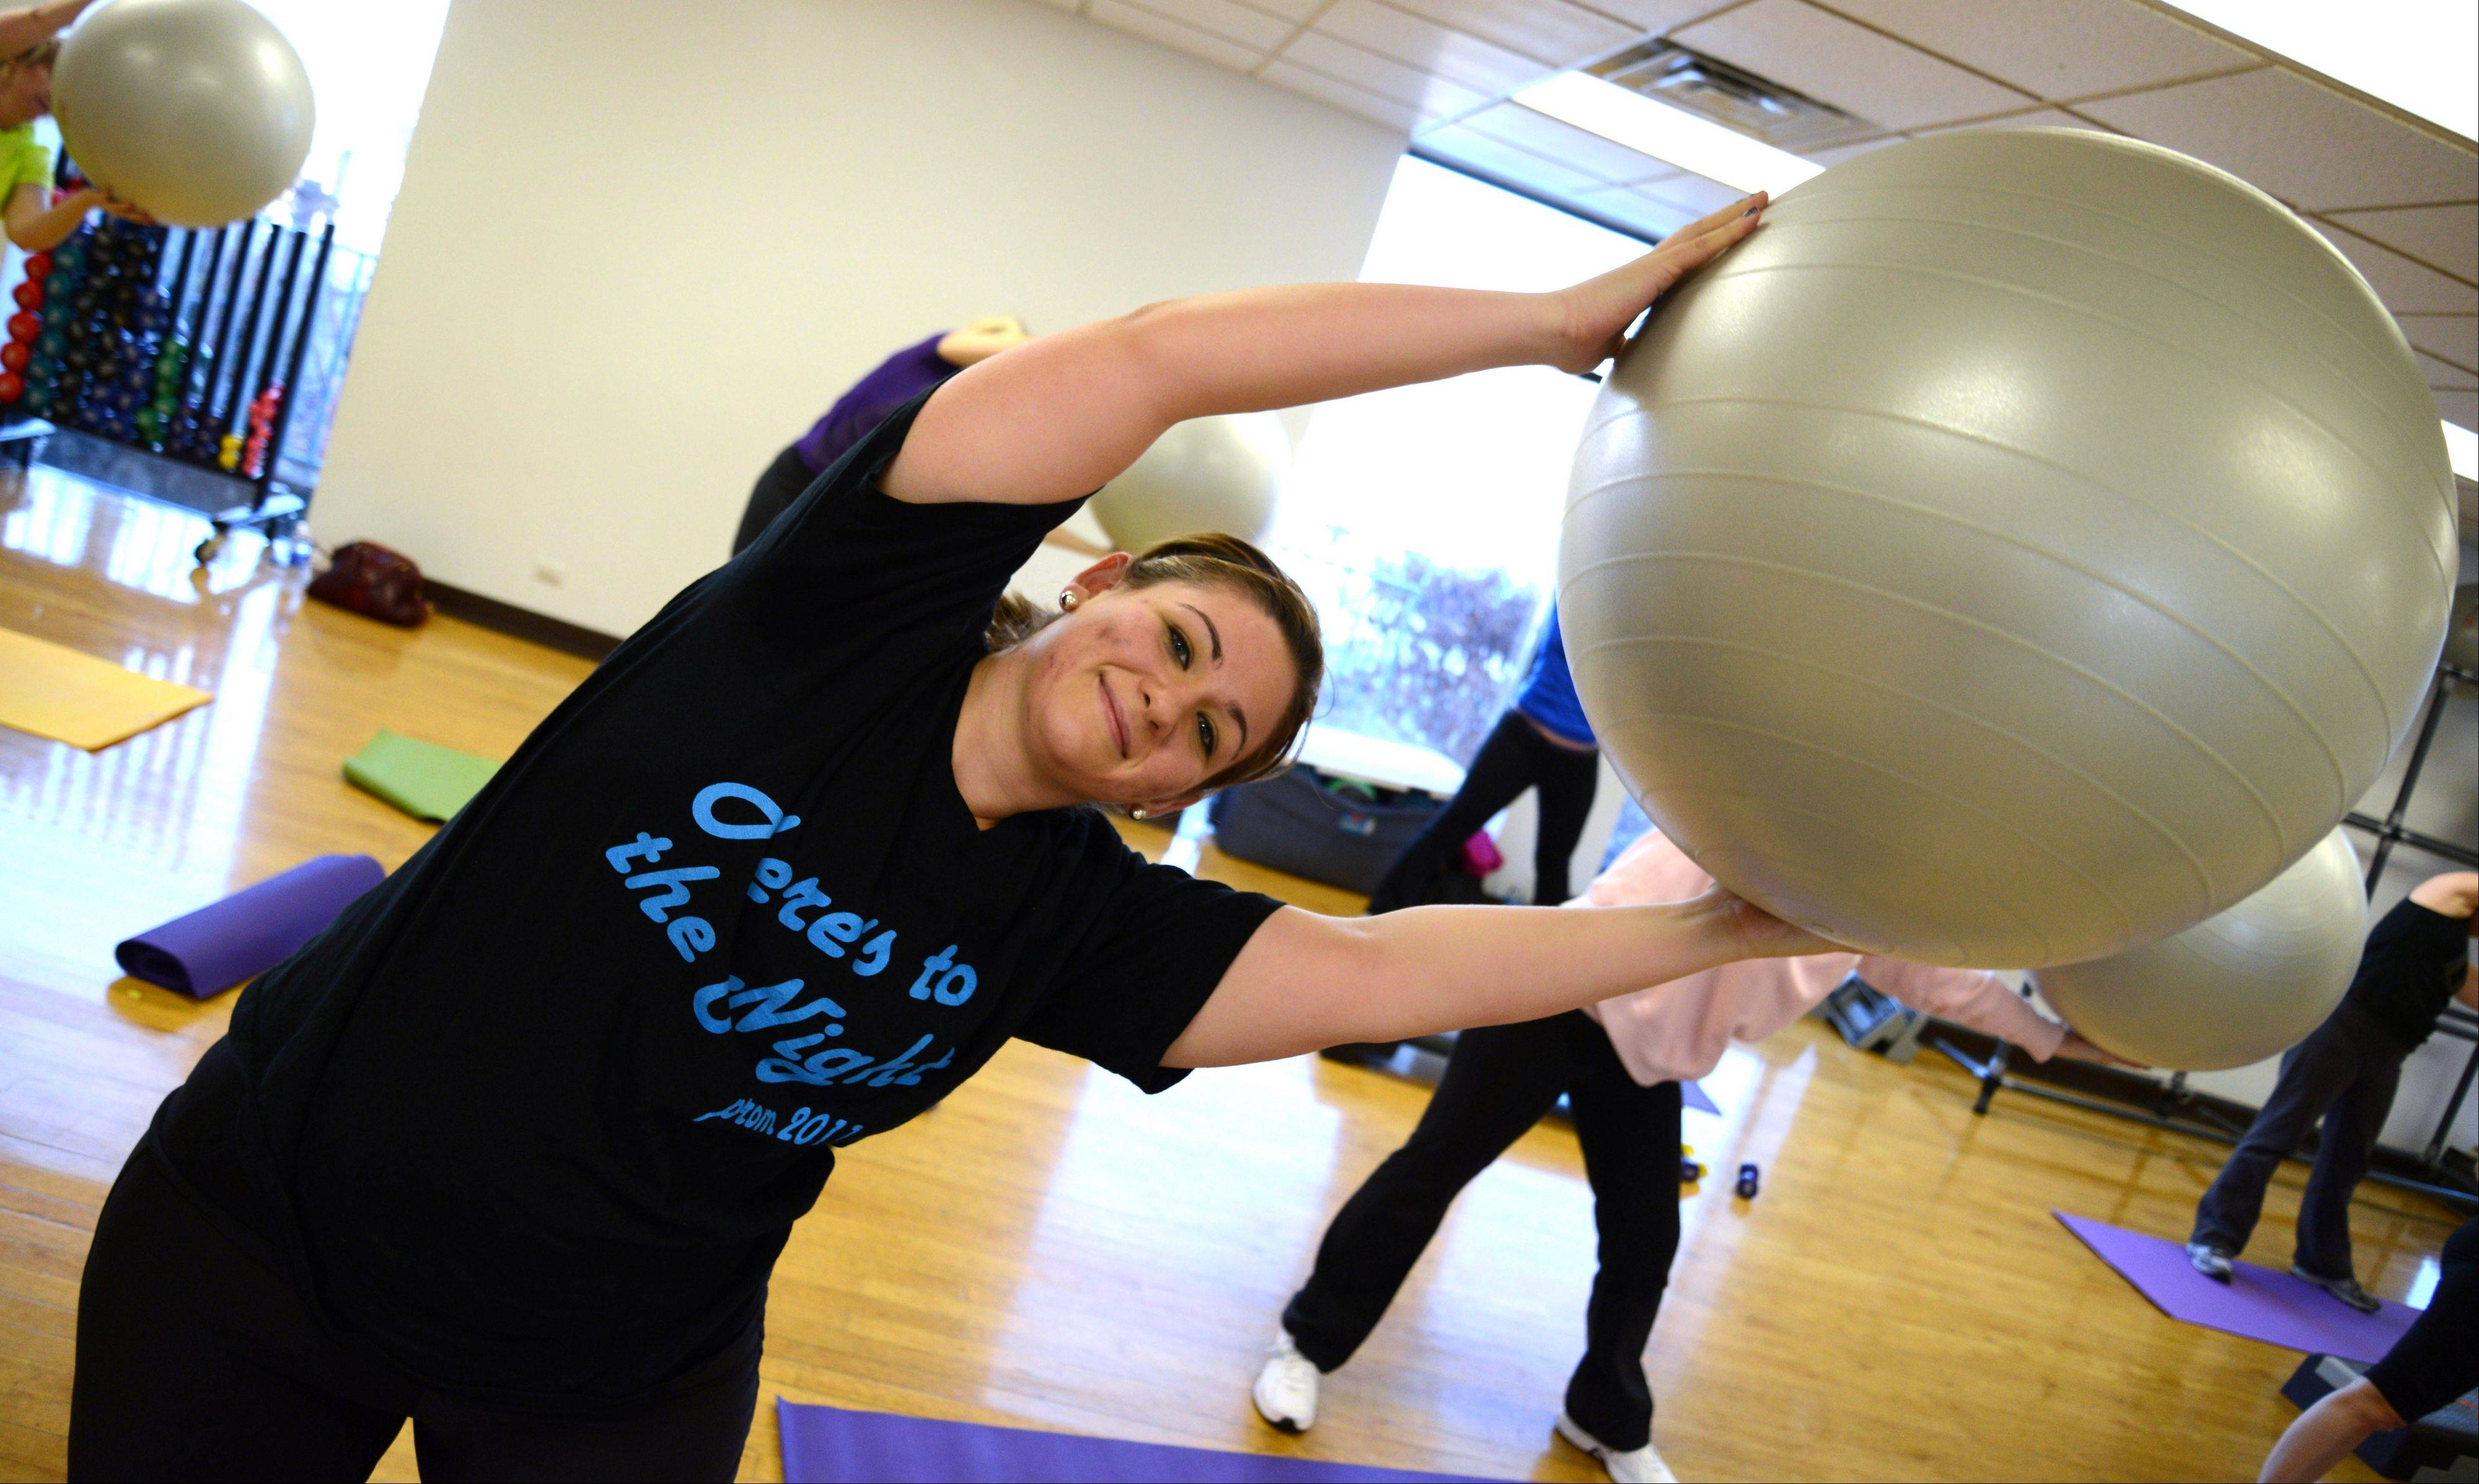 Rosanna Catapano of Bloomingdale works out with an exercise ball Saturday during Beginner Bootcamp at the Bloomingdale Park District�s first Fitness Open House. Catapano said she�s �ready to get back in shape� in 2013.